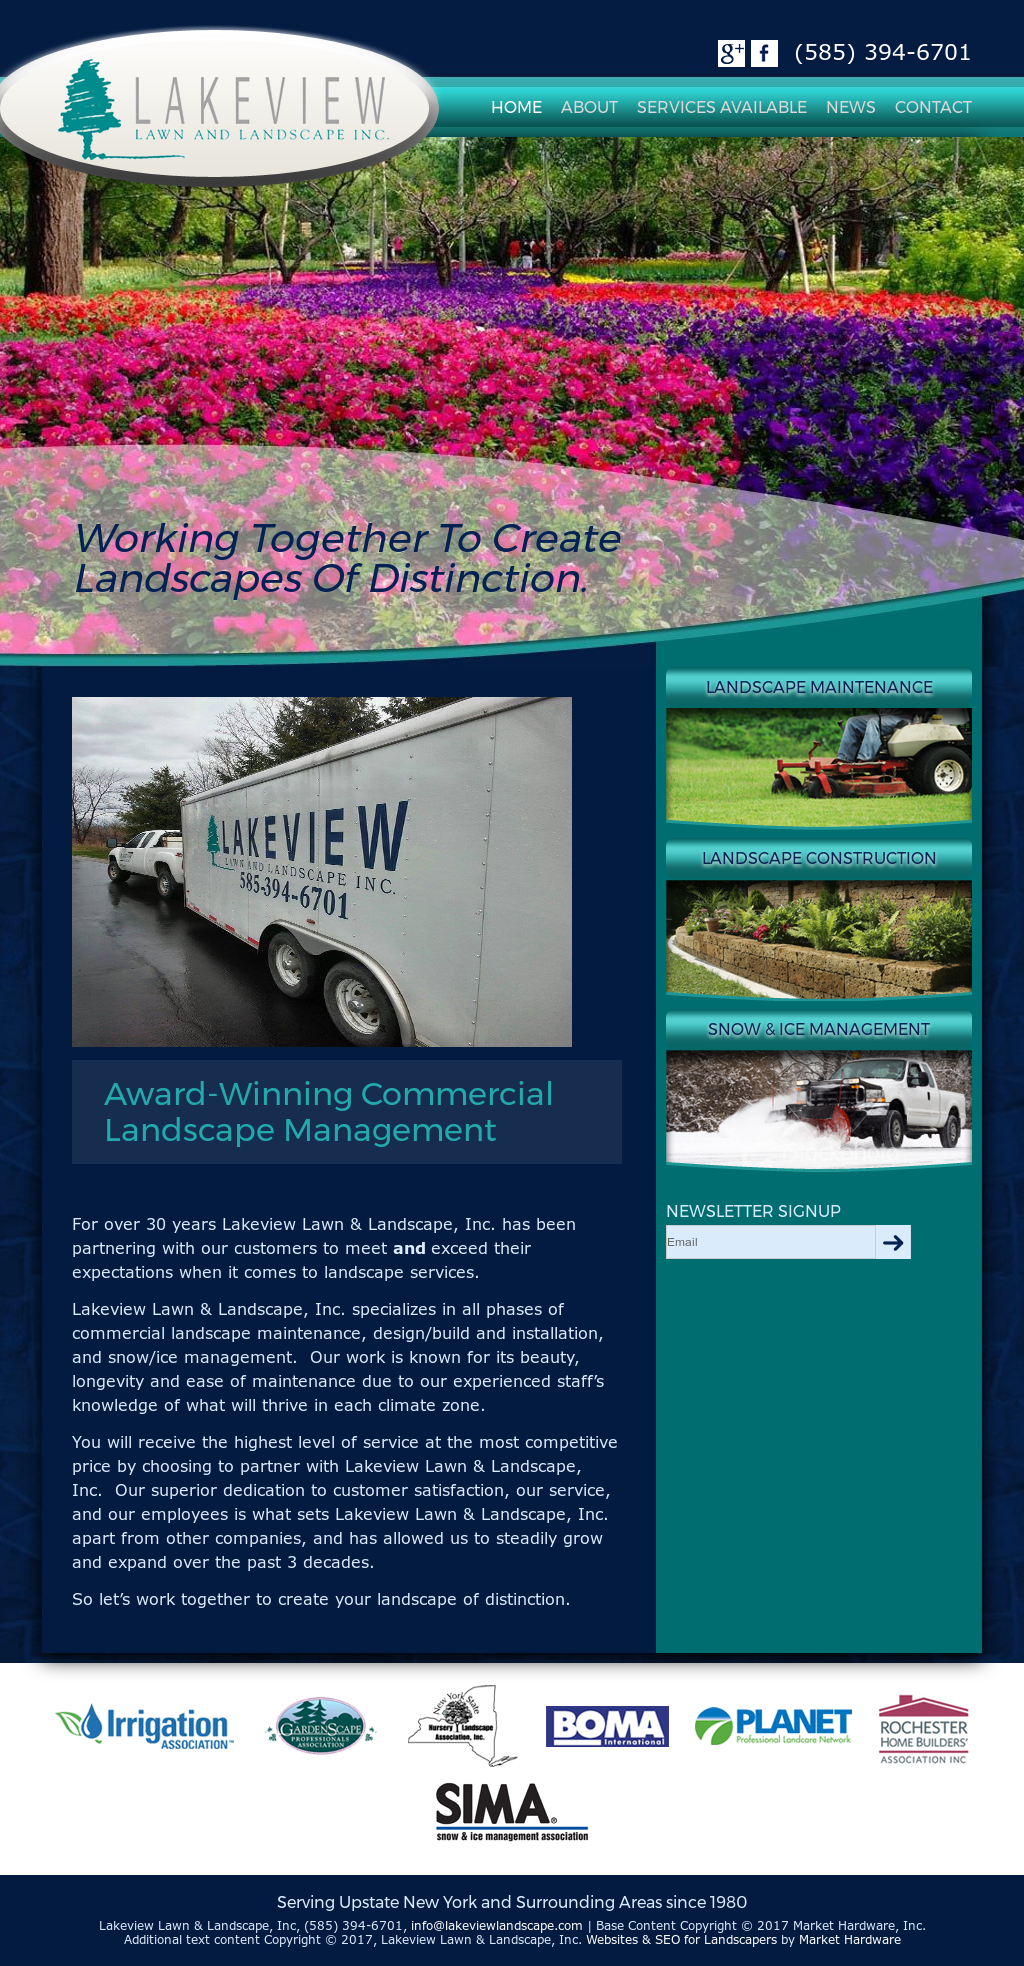 Lakeview Lawn & Landscape website history - Lakeview Lawn & Landscape Competitors, Revenue And Employees - Owler